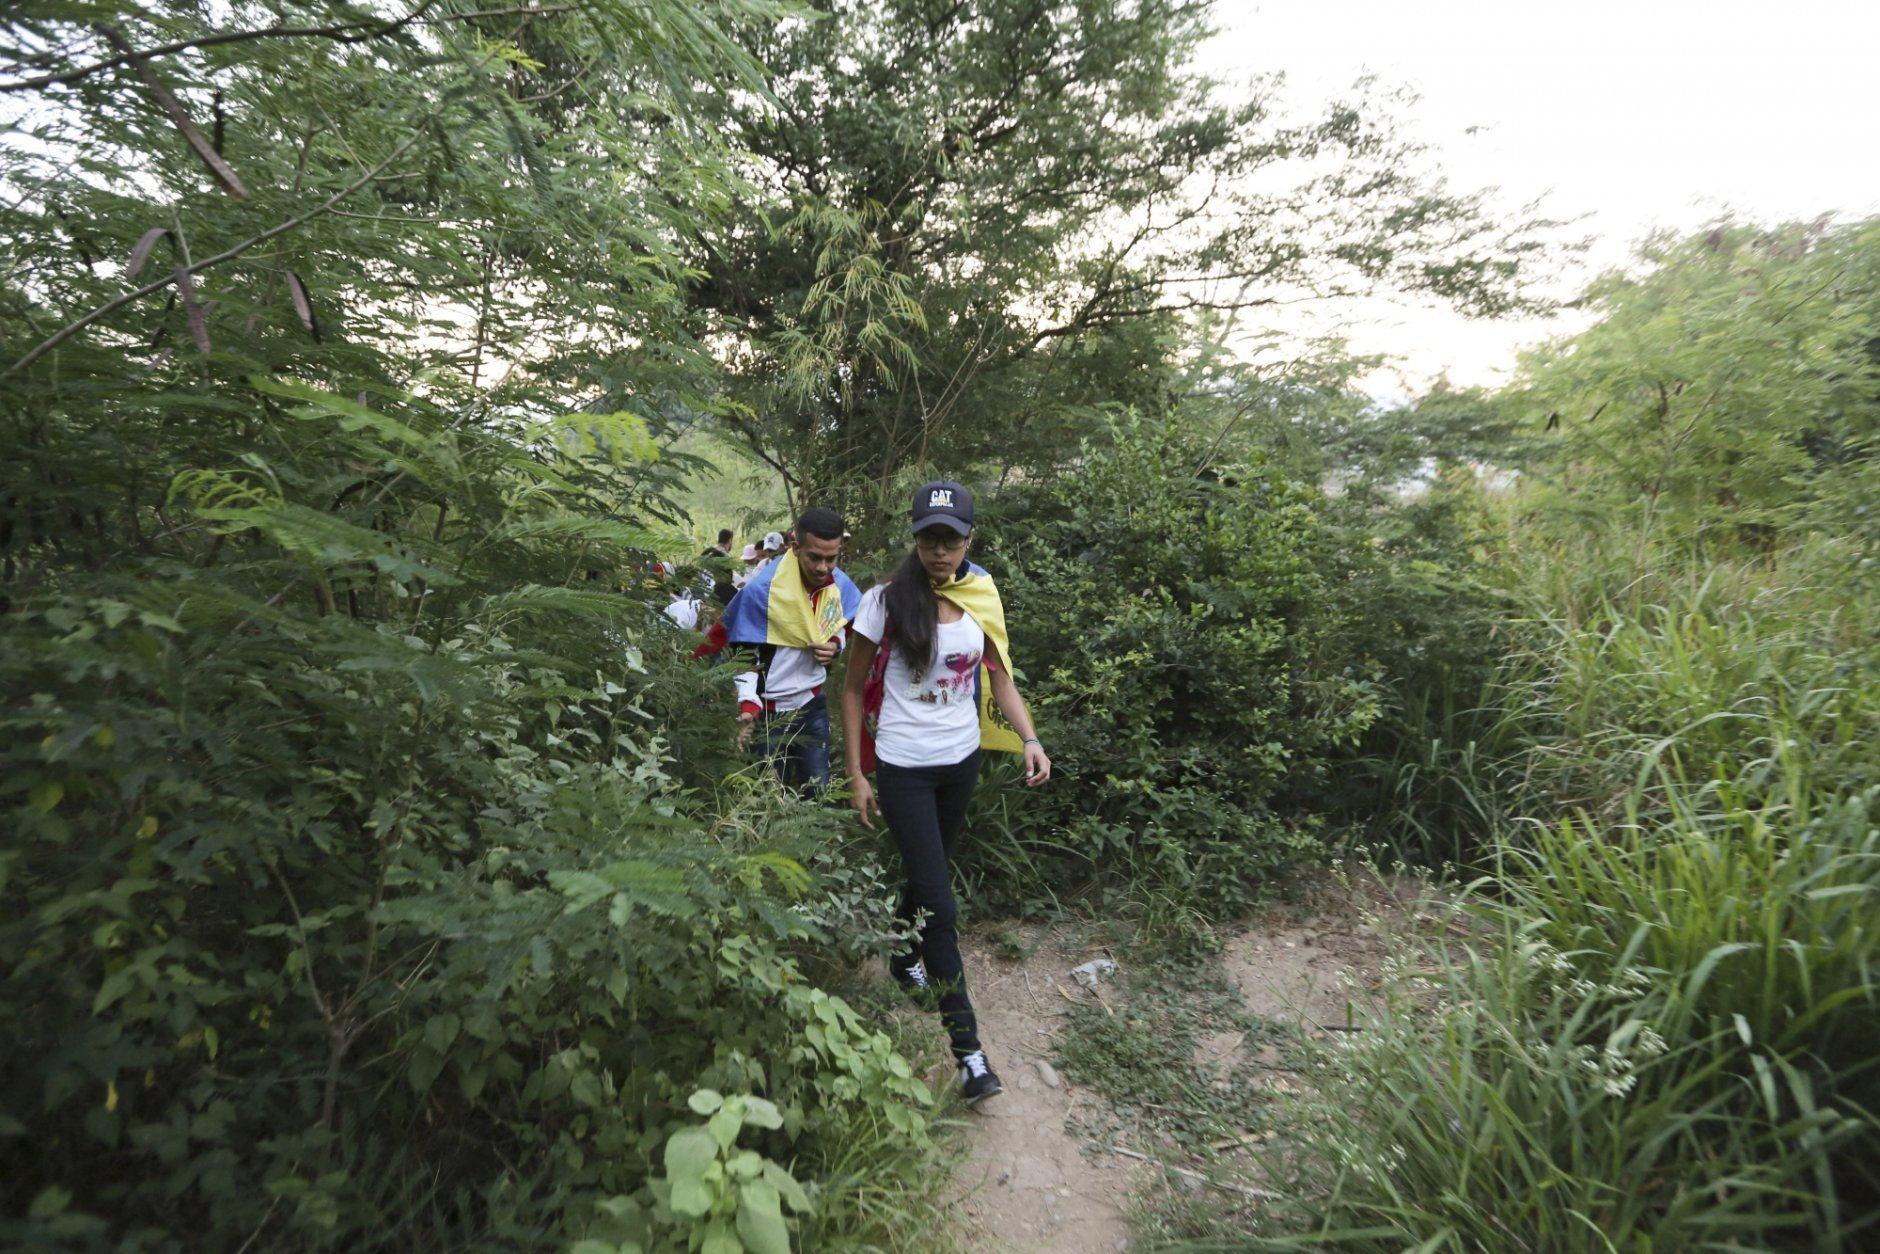 Youths wearing white T-shirts and Venezuelan flags hike through an unmarked trail between high bushes to sneak into Colombia, for the Venezuela Aid Live concert on the Colombian side of the border, in Palotal, Venezuela, Friday, Feb. 22, 2019. Venezuela's power struggle is set to become a battle of the bands Friday when musicians demanding President Nicolas Maduro allow in humanitarian aid and those supporting his refusal sing in rival concerts being held at both sides of a border bridge where tons of donated food and medicine are stored.(AP Photo/Fernando Llano)